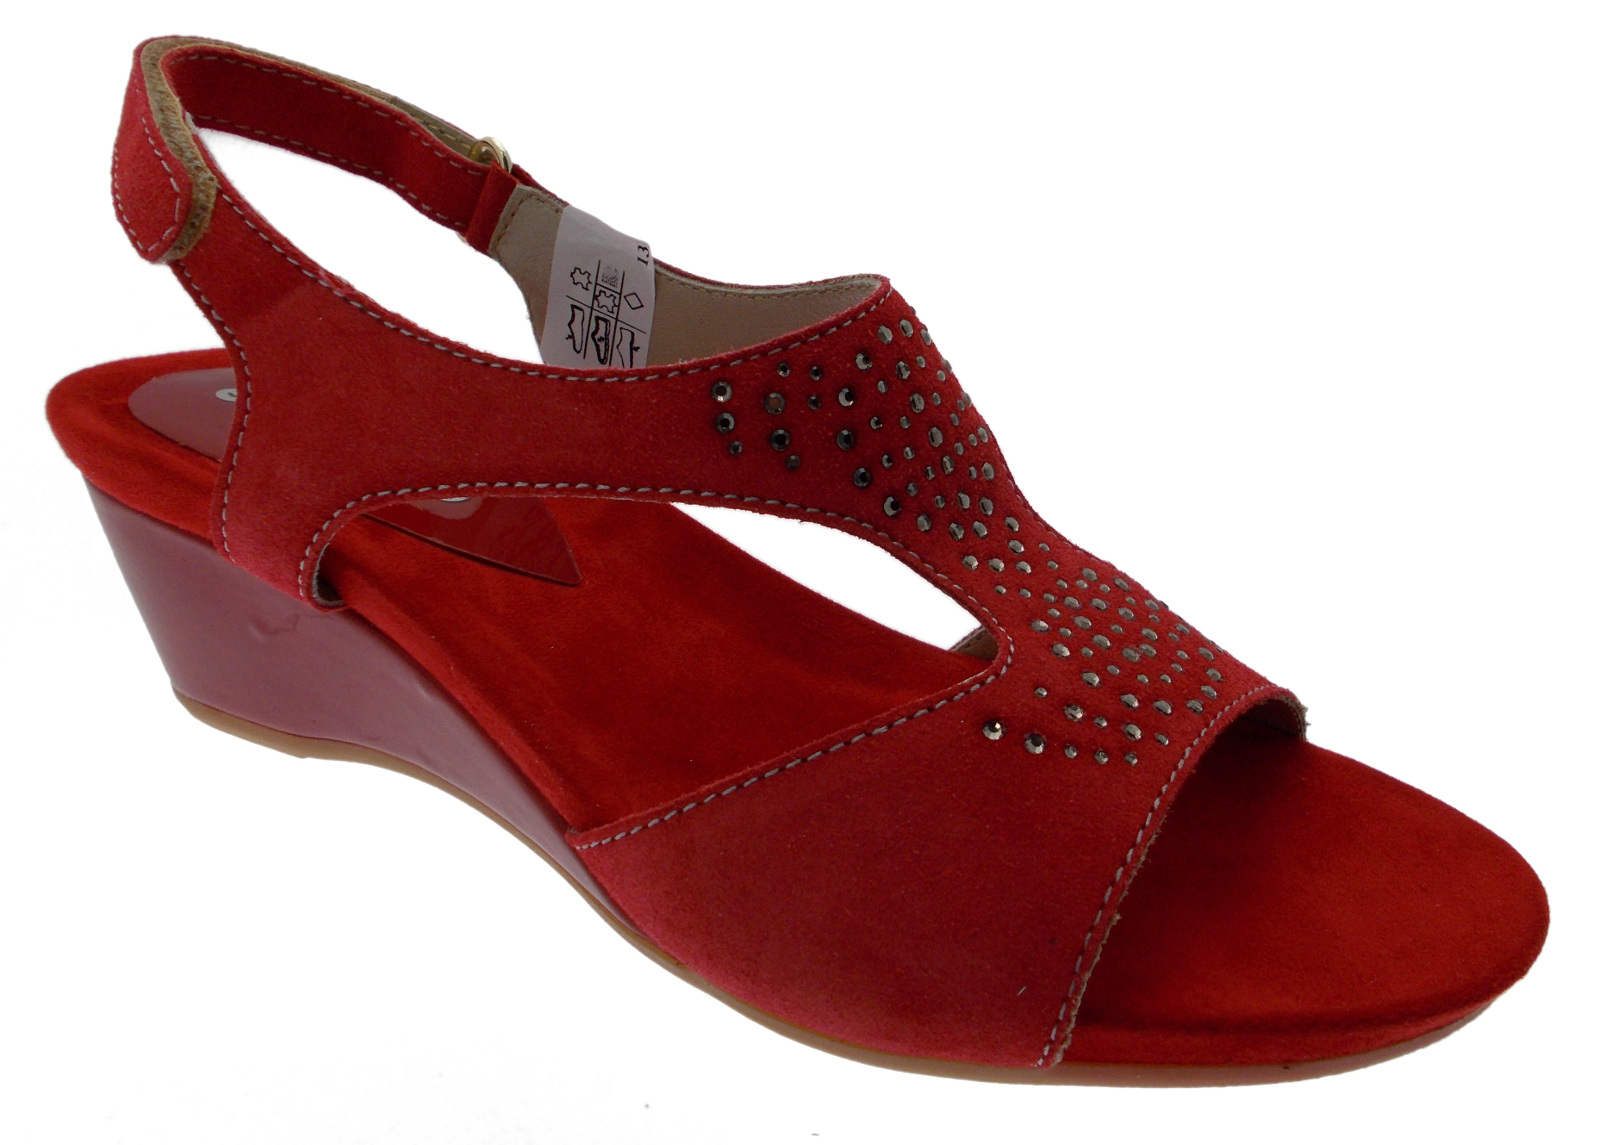 Melluso MEK95015ro rosso - Chaussures Sandale Femme